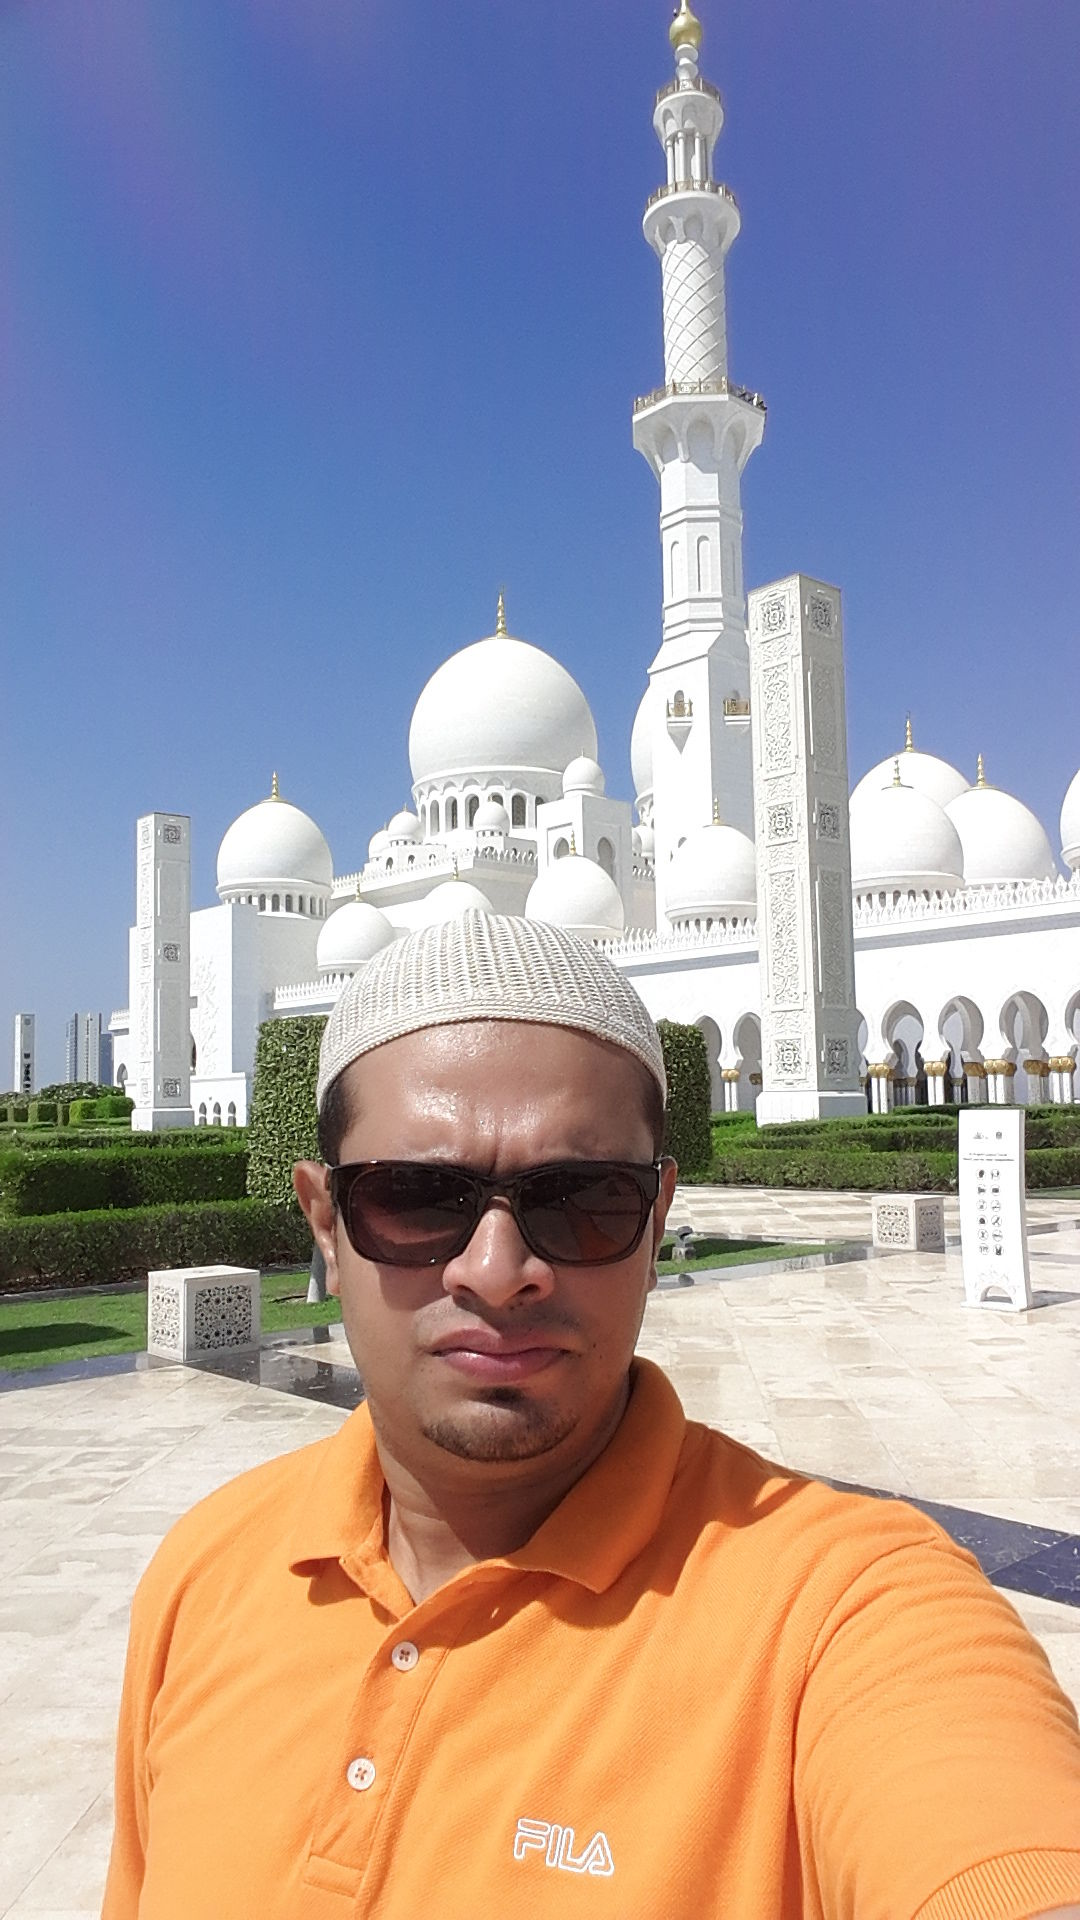 Photo of Mosque Of Sheikh Zayed Bin Sultan the First - 9 - Street - Abu Dhabi - United Arab Emirates By Mohamed Zaheen T